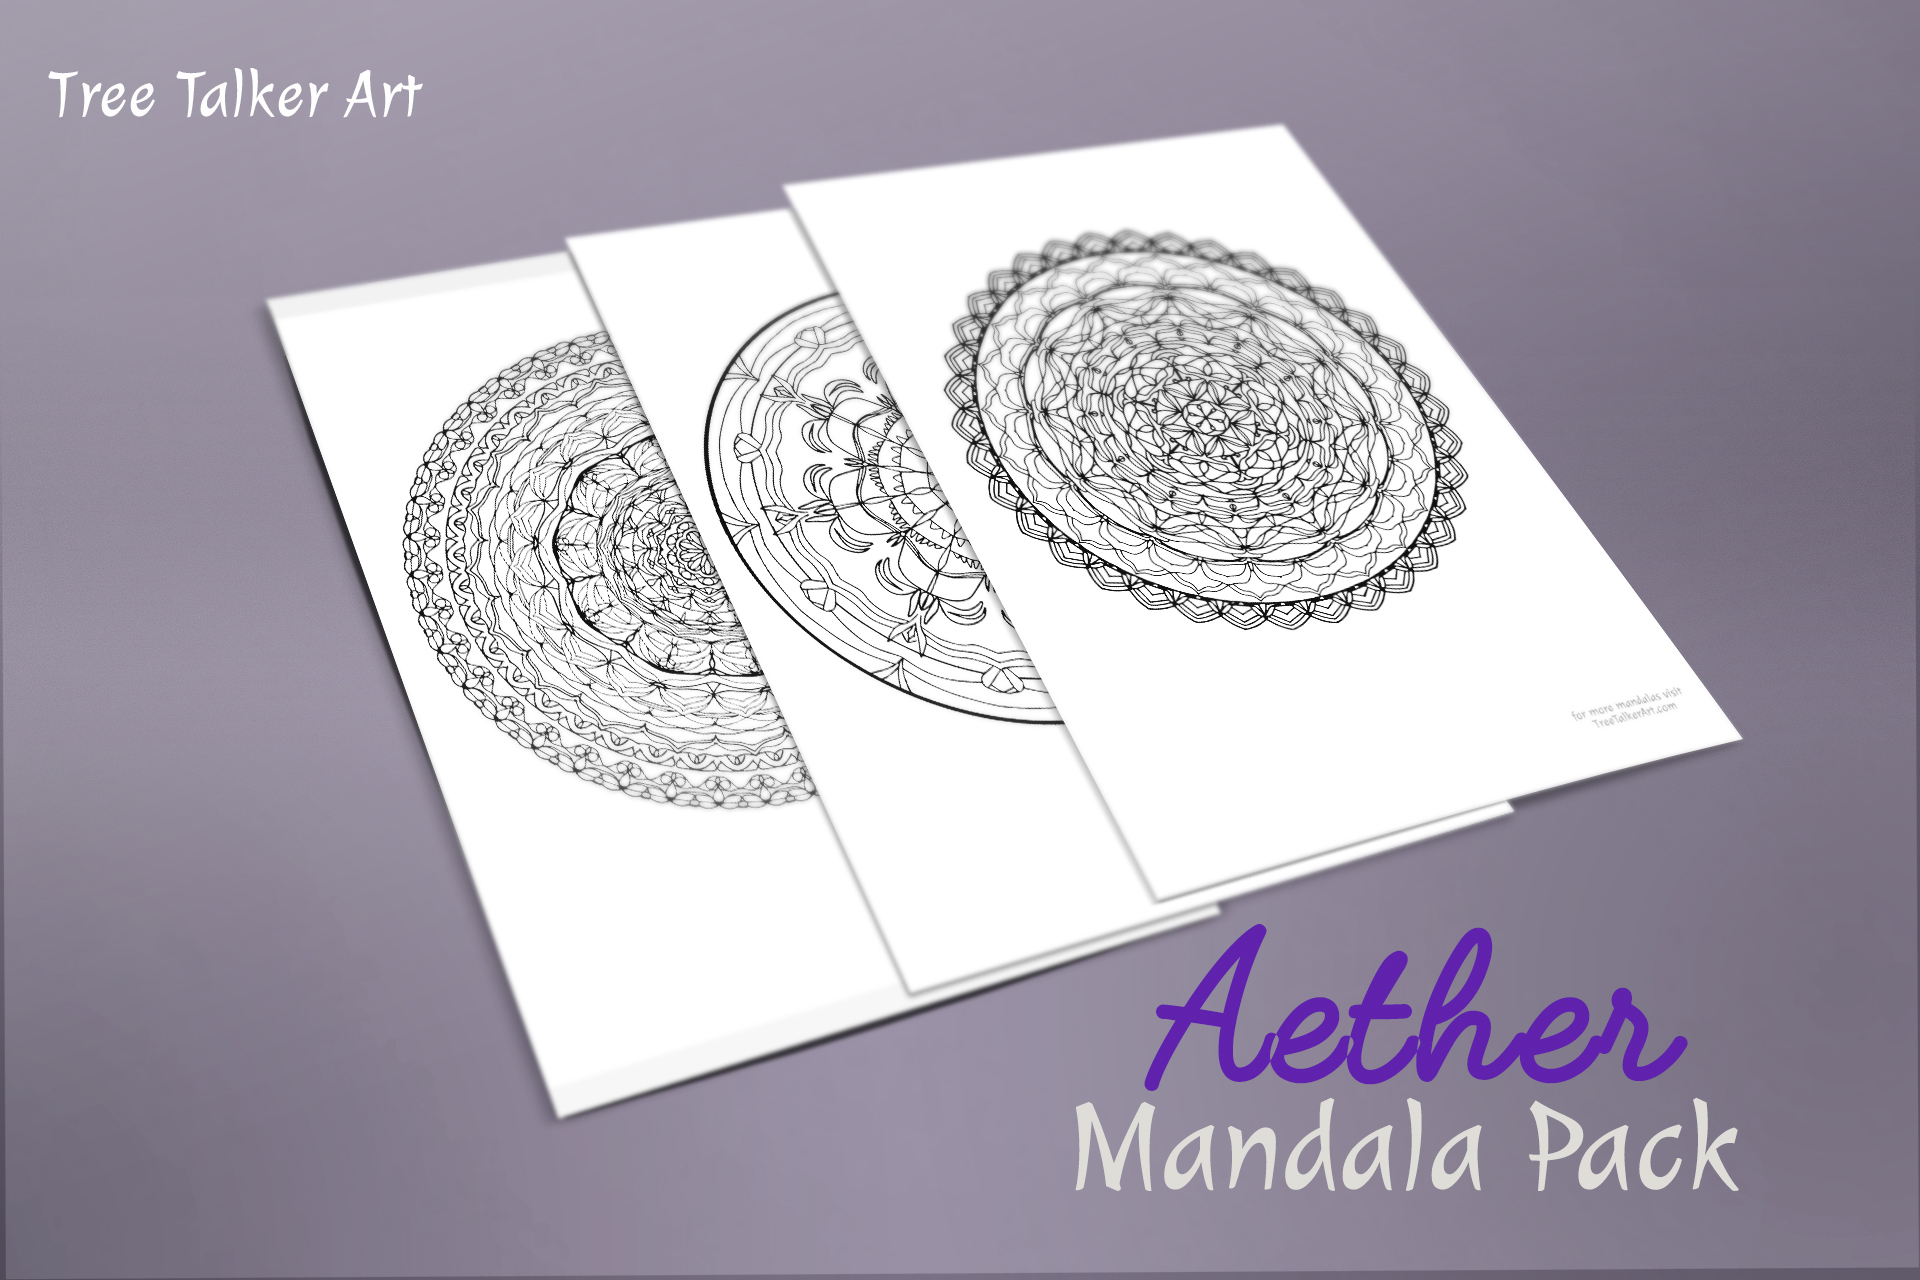 Aether Downloadable Mandala Meditation Pack | Tree Talker Art